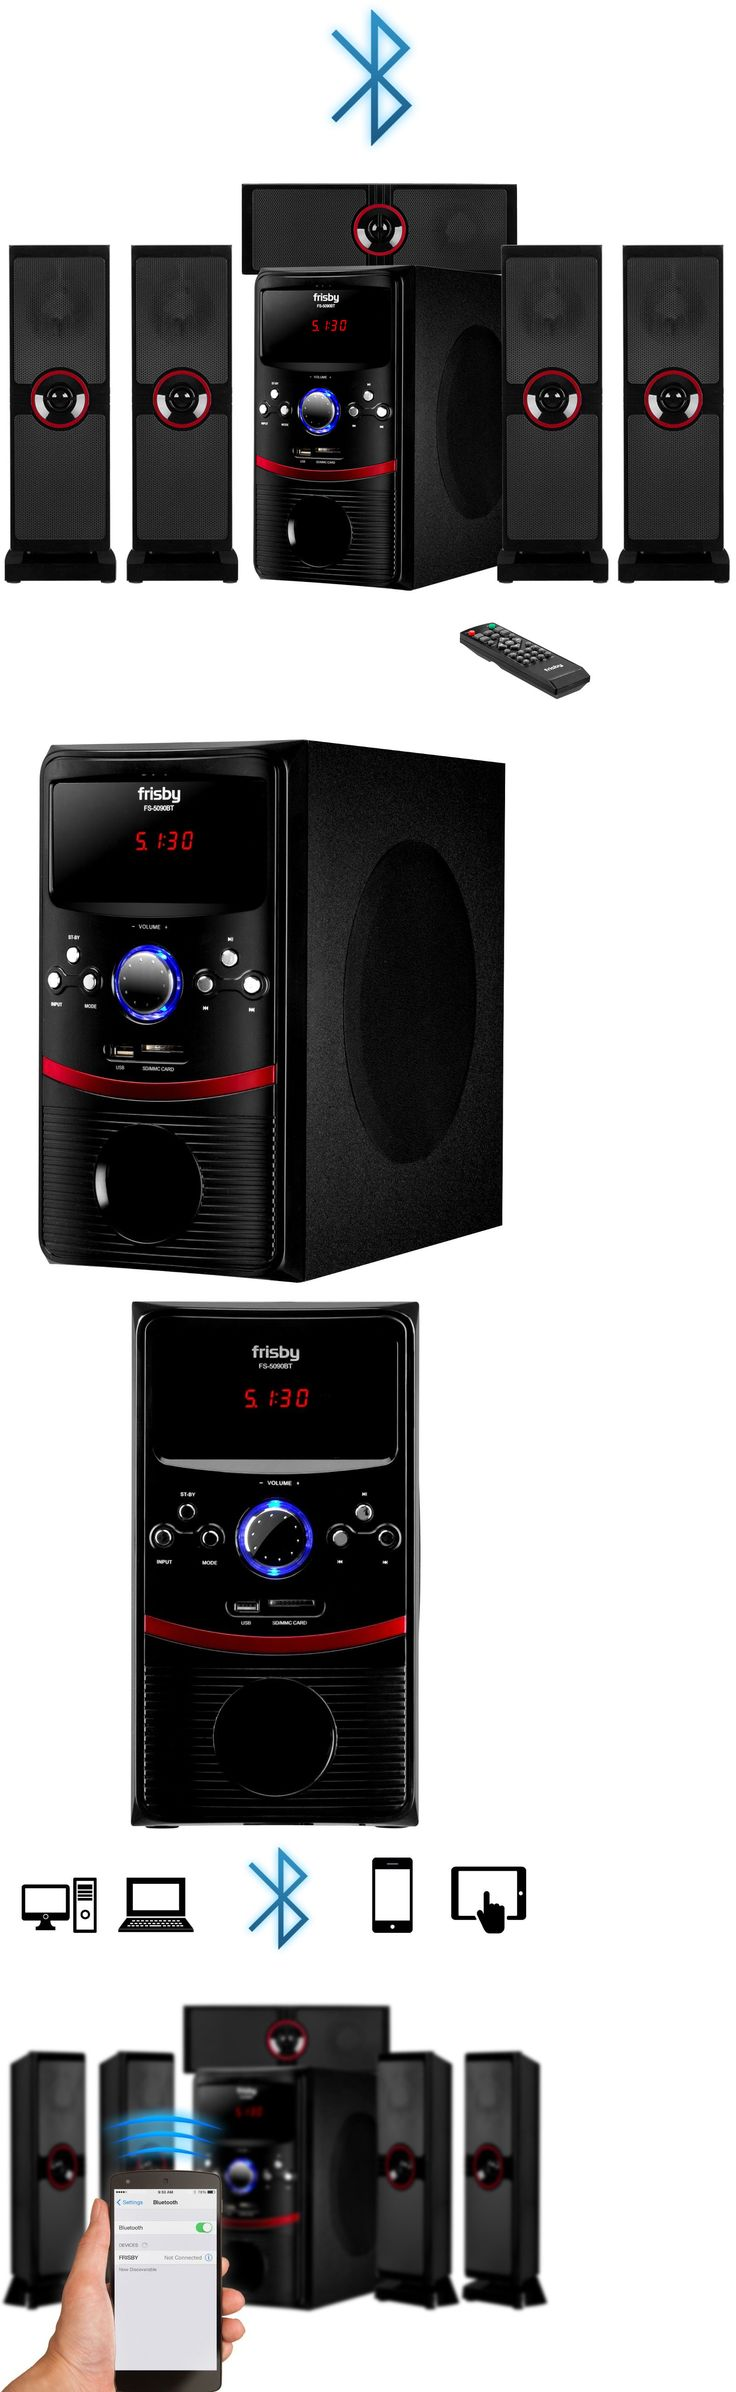 Home Theater Systems: Frisby Fs-5090Bt Surround Sound System 5.1 Ch W Bluetooth Sd Usb Aux For Tv Pc -> BUY IT NOW ONLY: $109.95 on eBay!